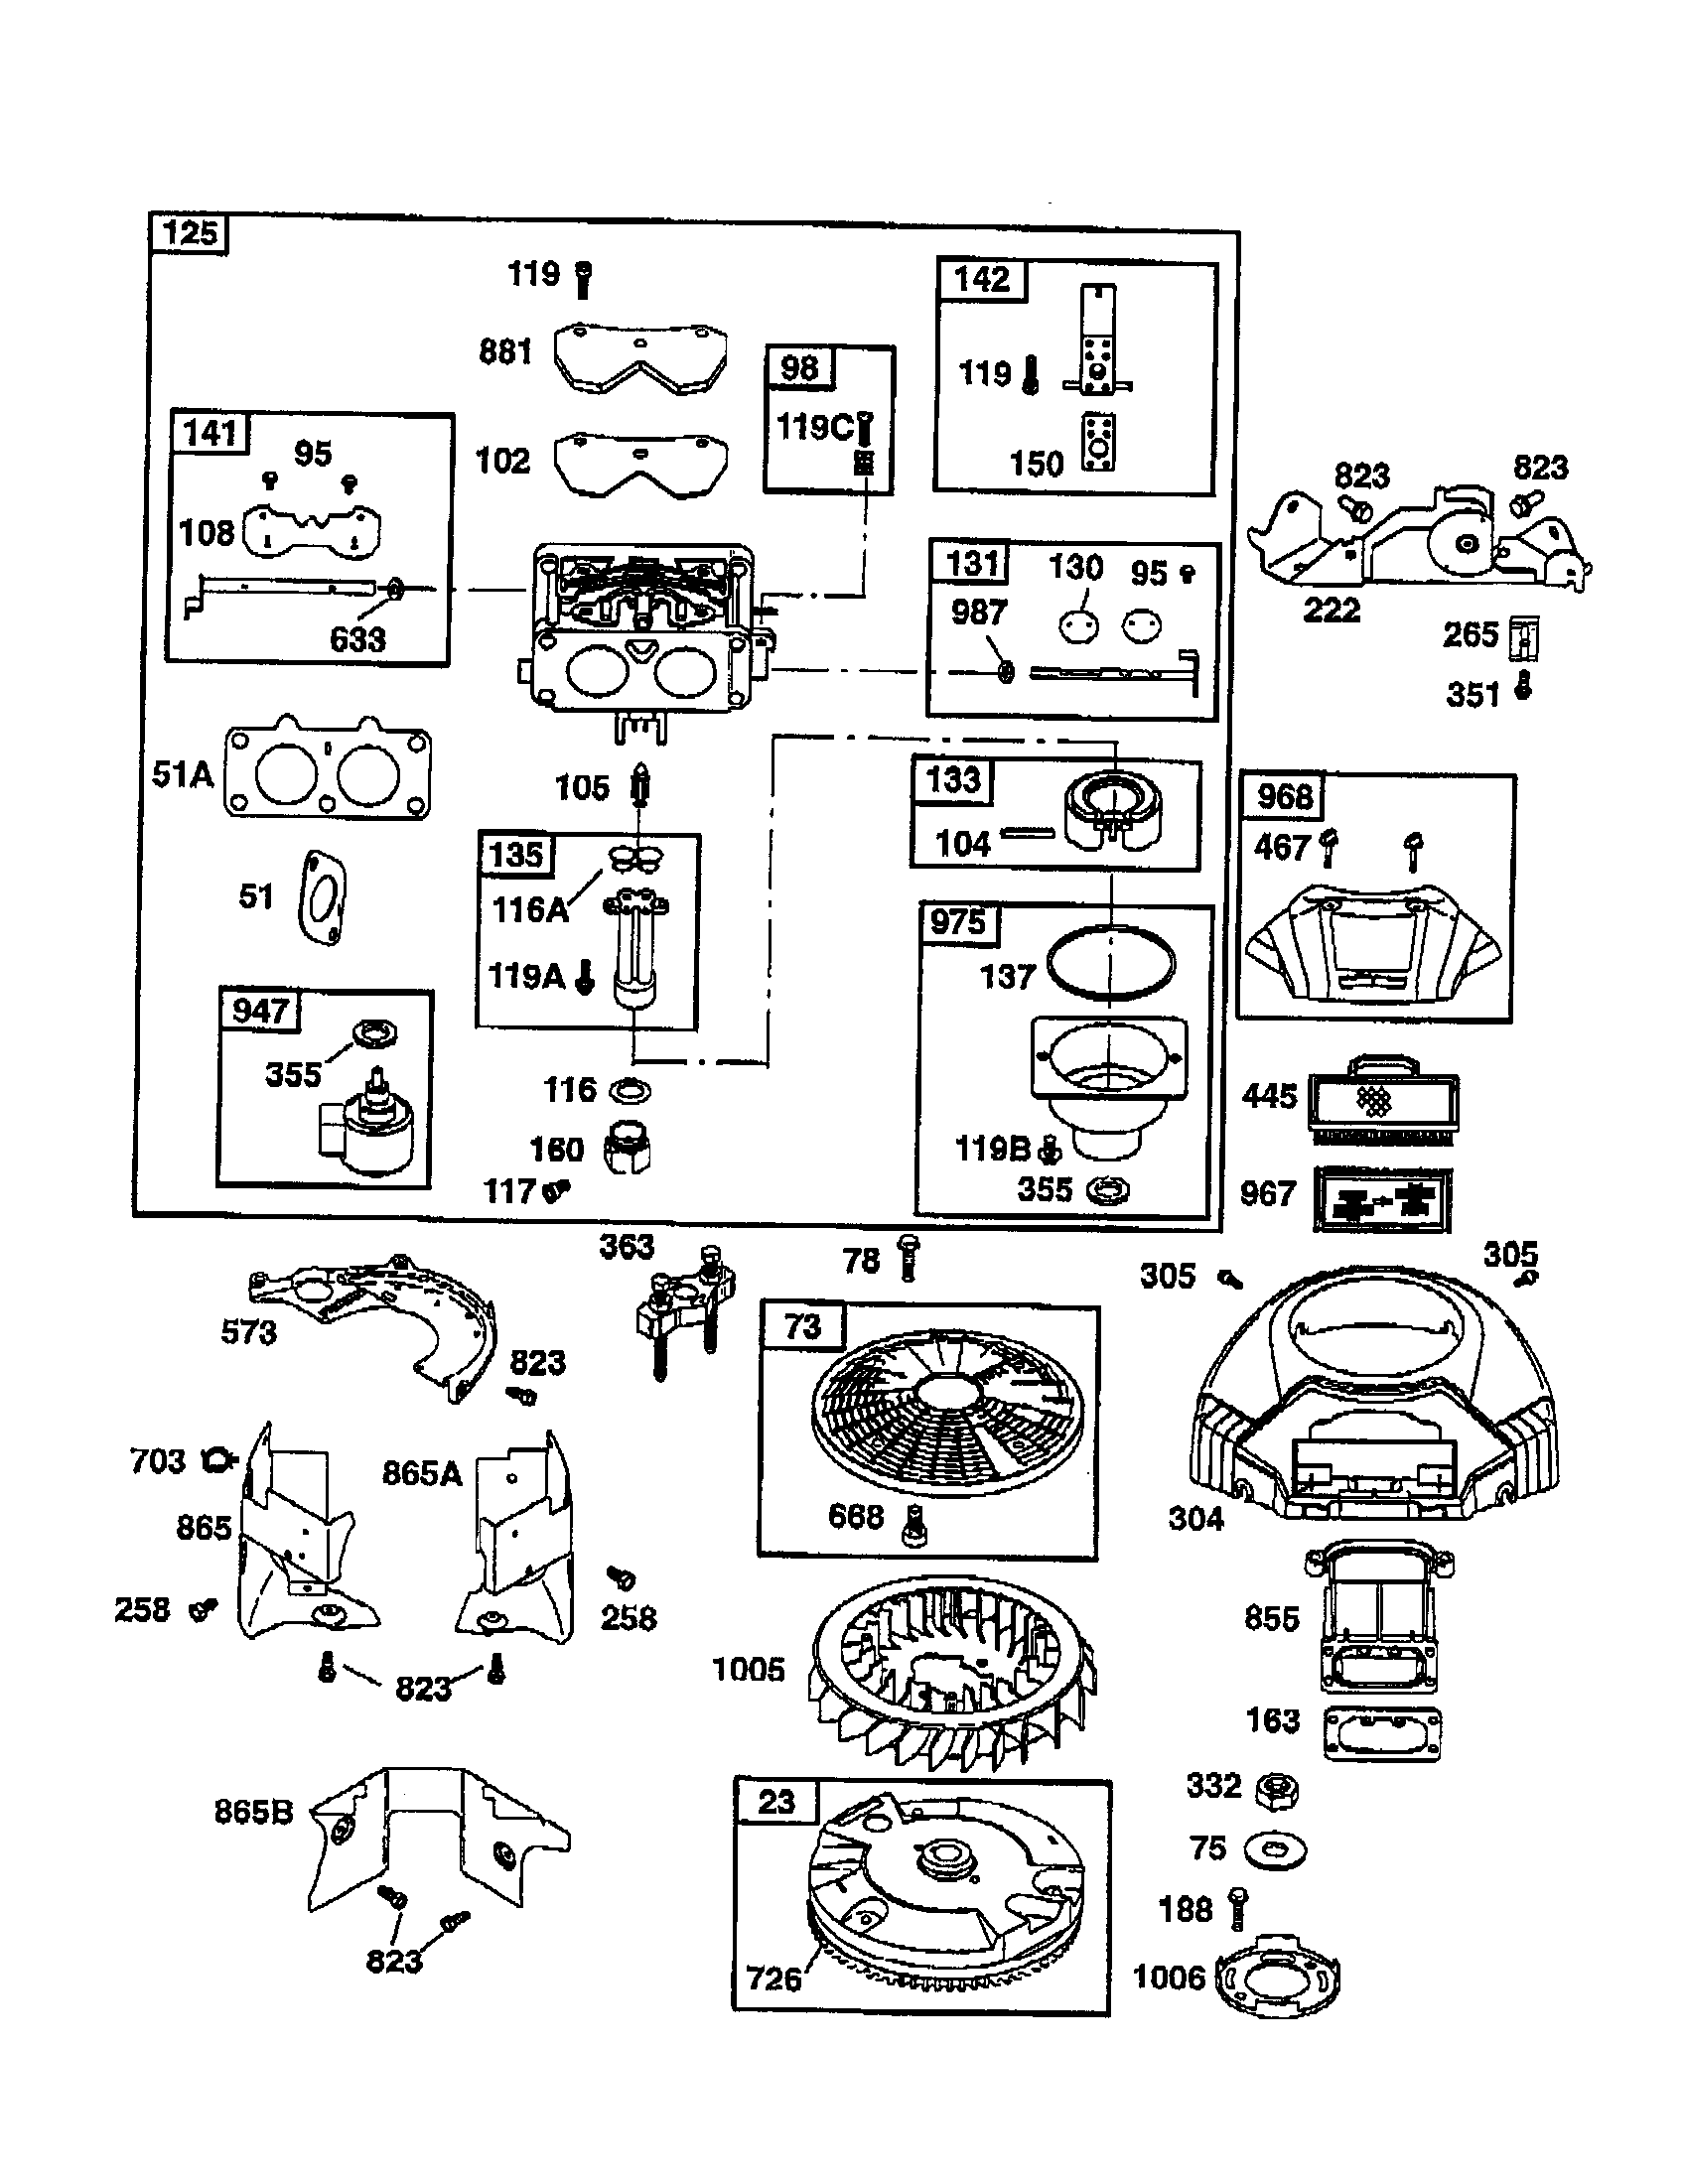 Radio Wiring Diagram For 1992 Ford Mustang 1997 Mustang